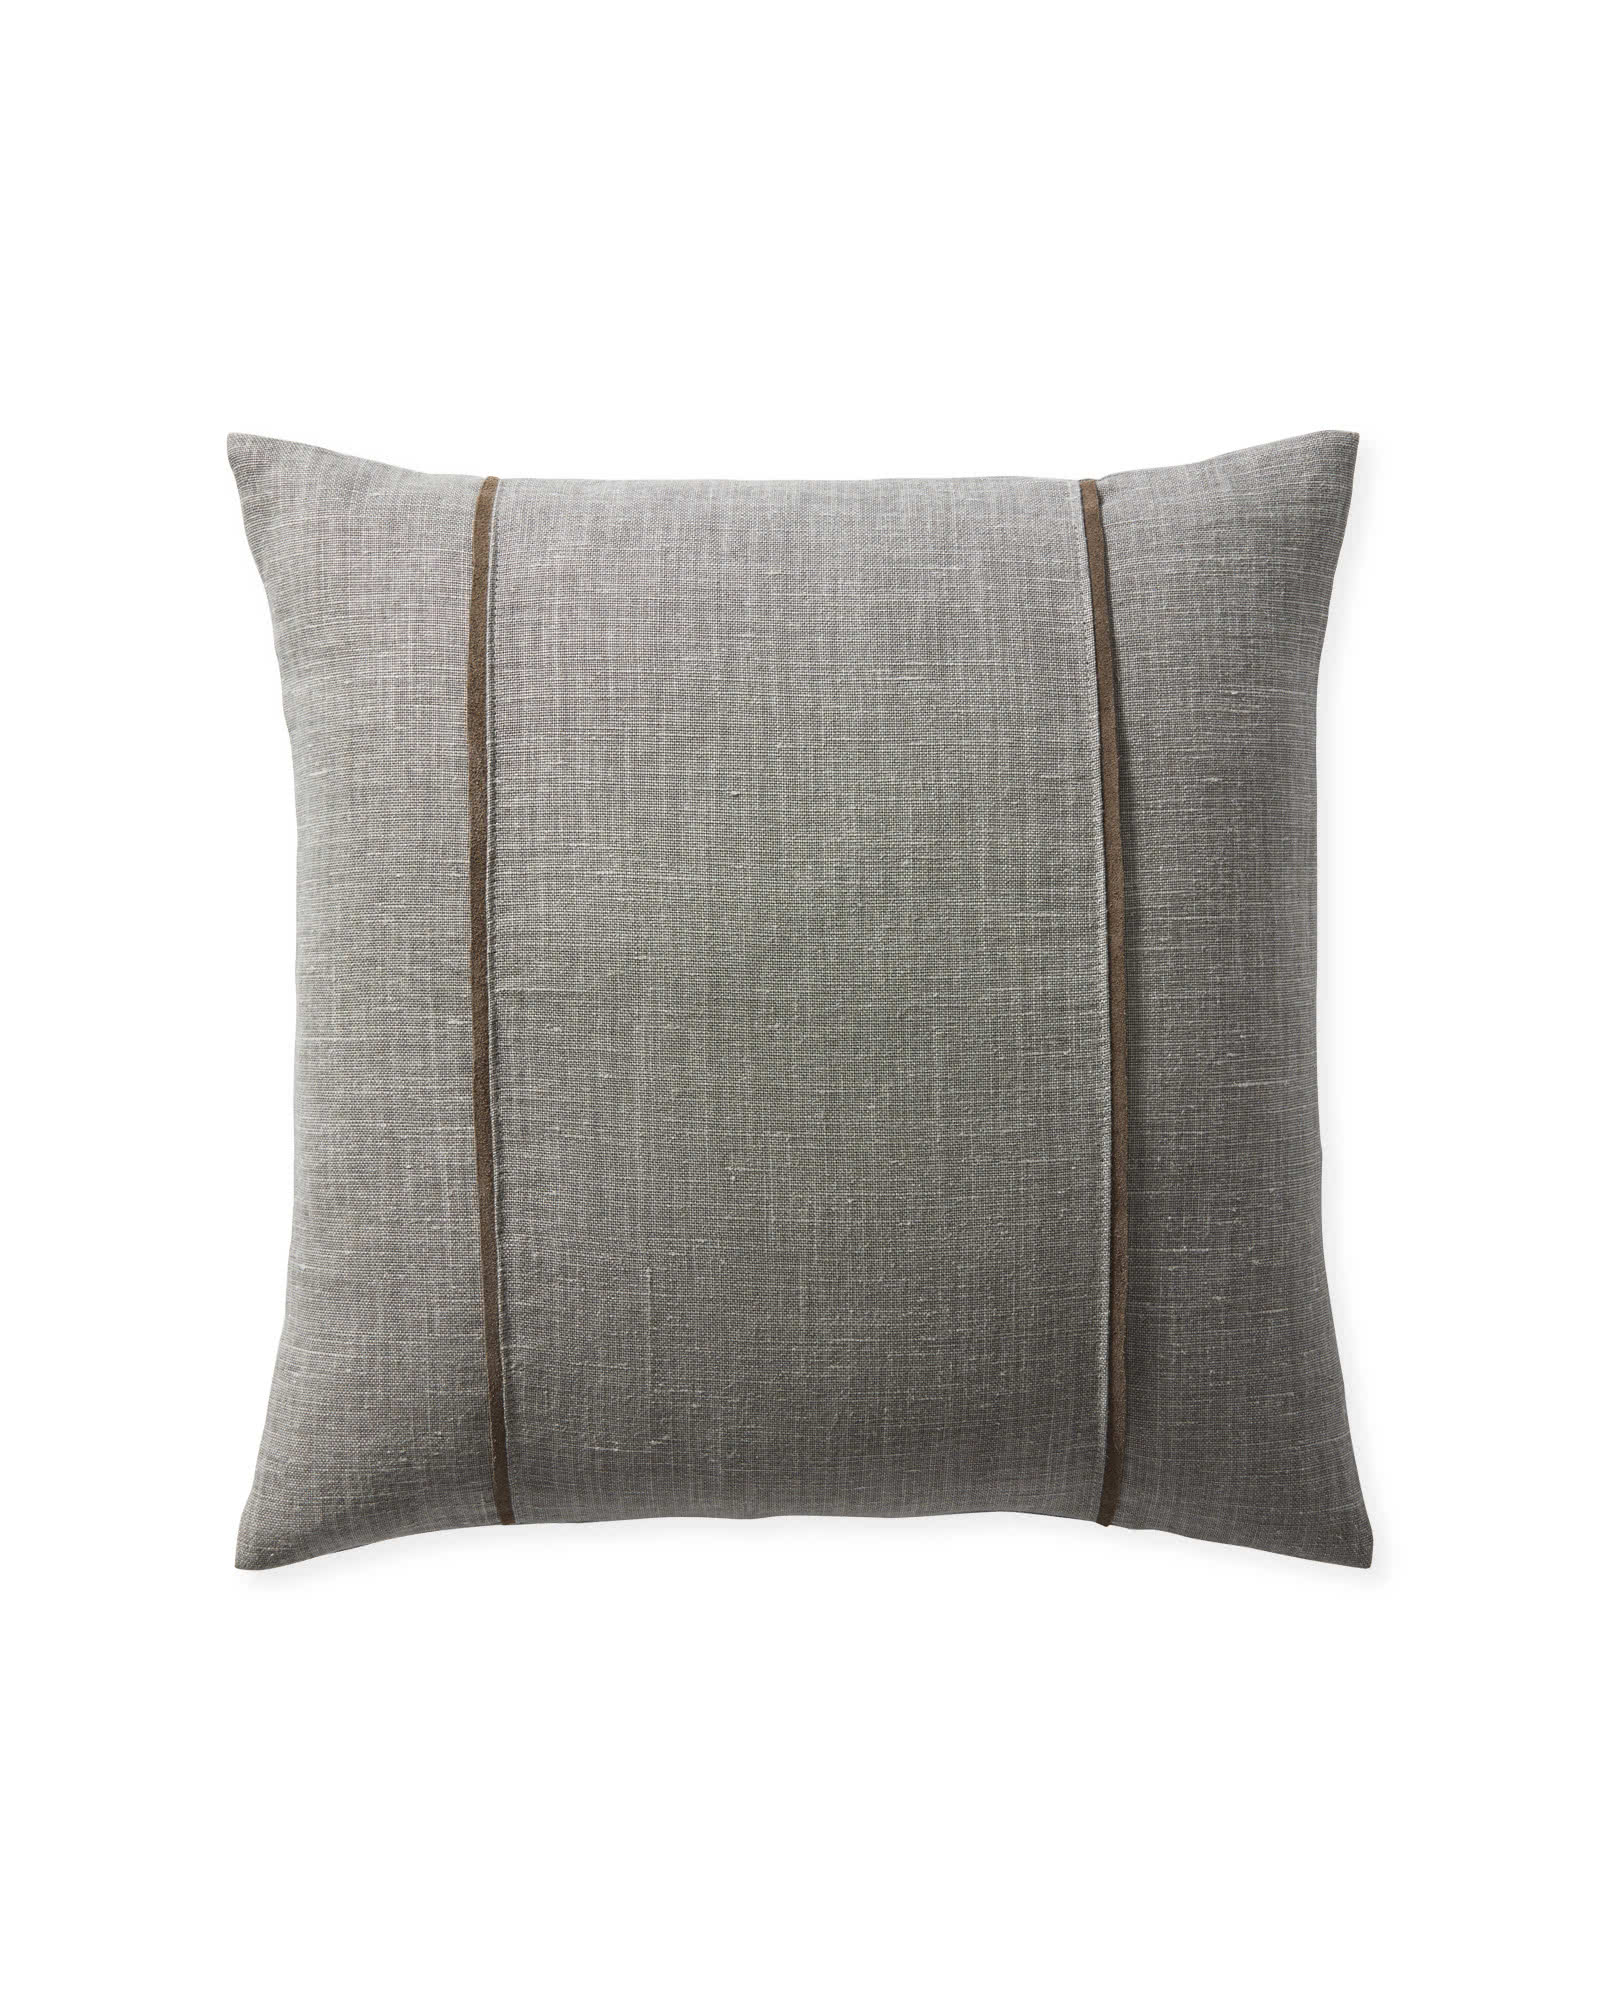 Kentfield Pillow Cover, Smoke